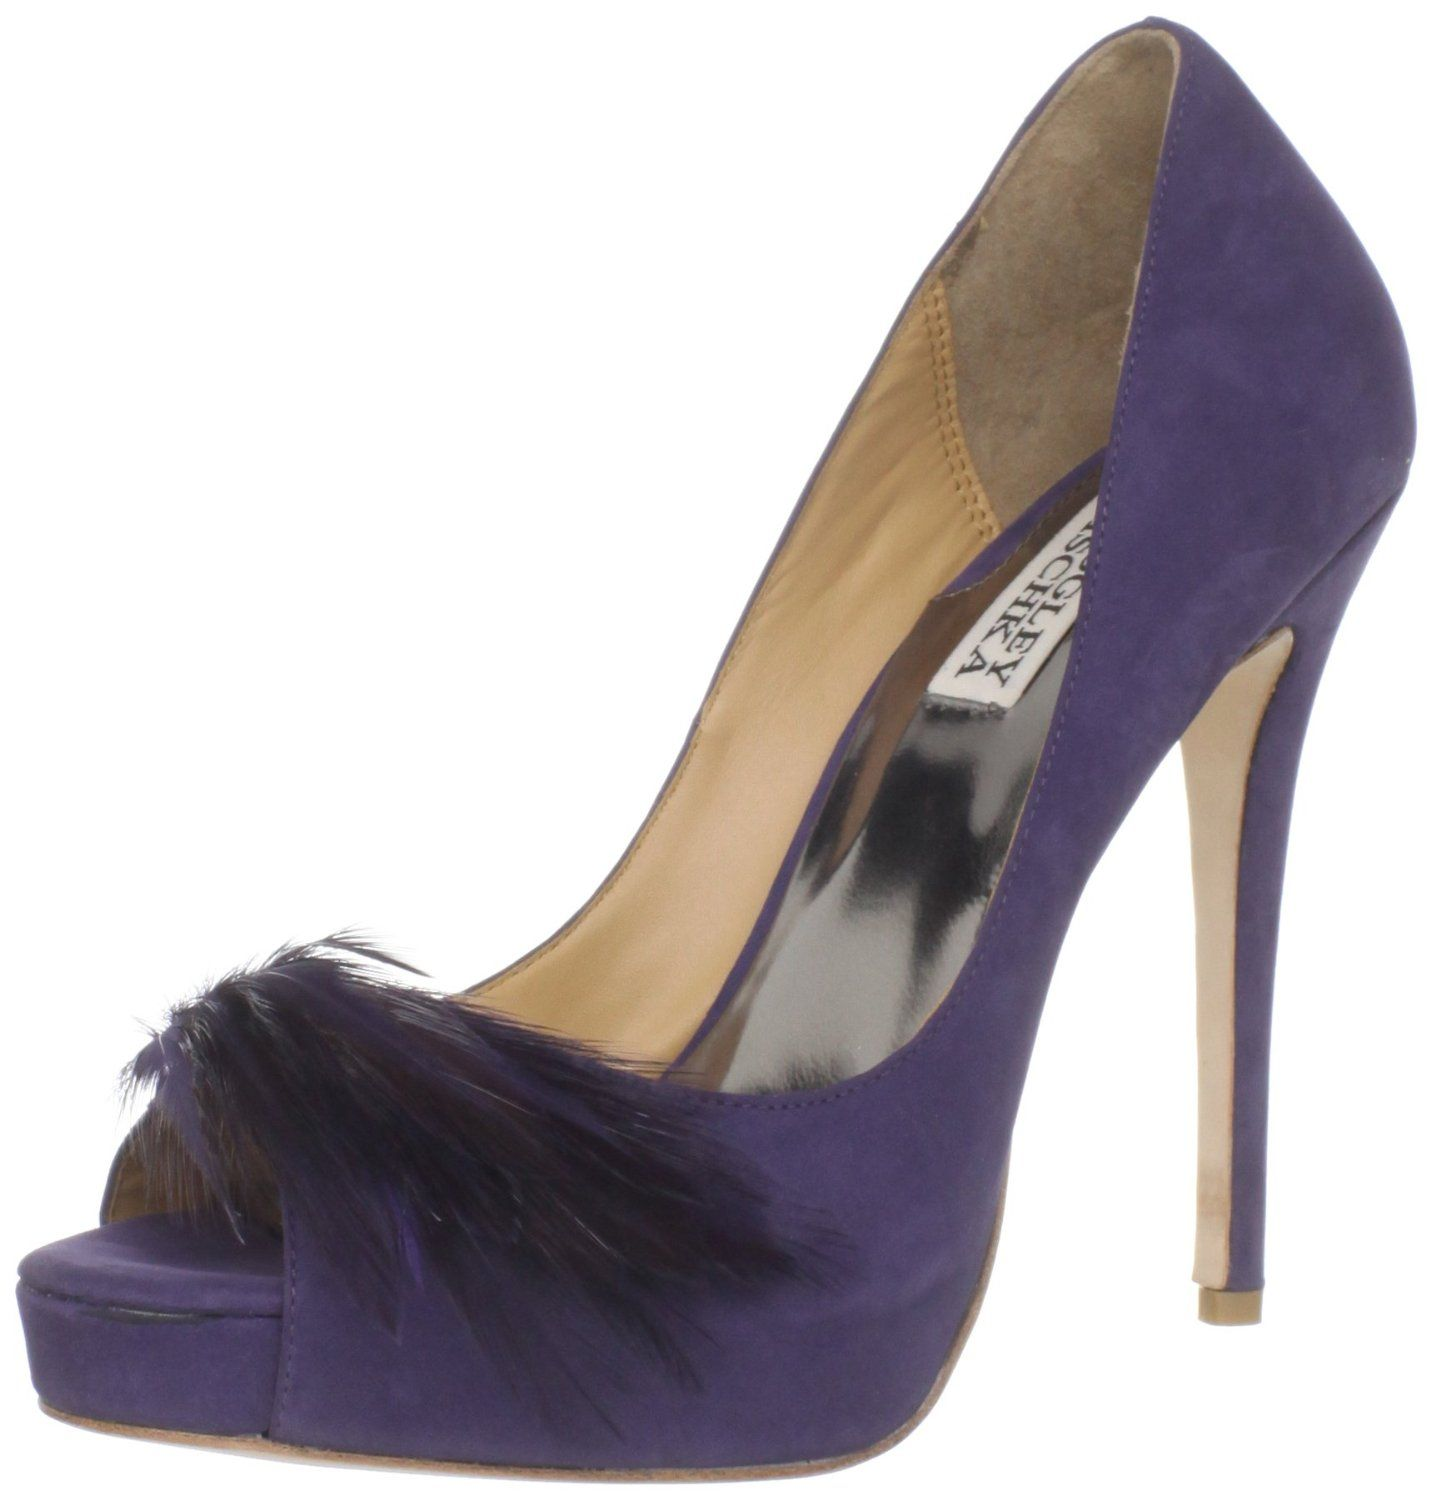 Badgley Mischka Purple wedding Shoes. Love the feather trim. Spectacular bridesmaid shoes, plus they are in white just right as bridal shoes. Comes in lots of colours www.finditforweddings.com